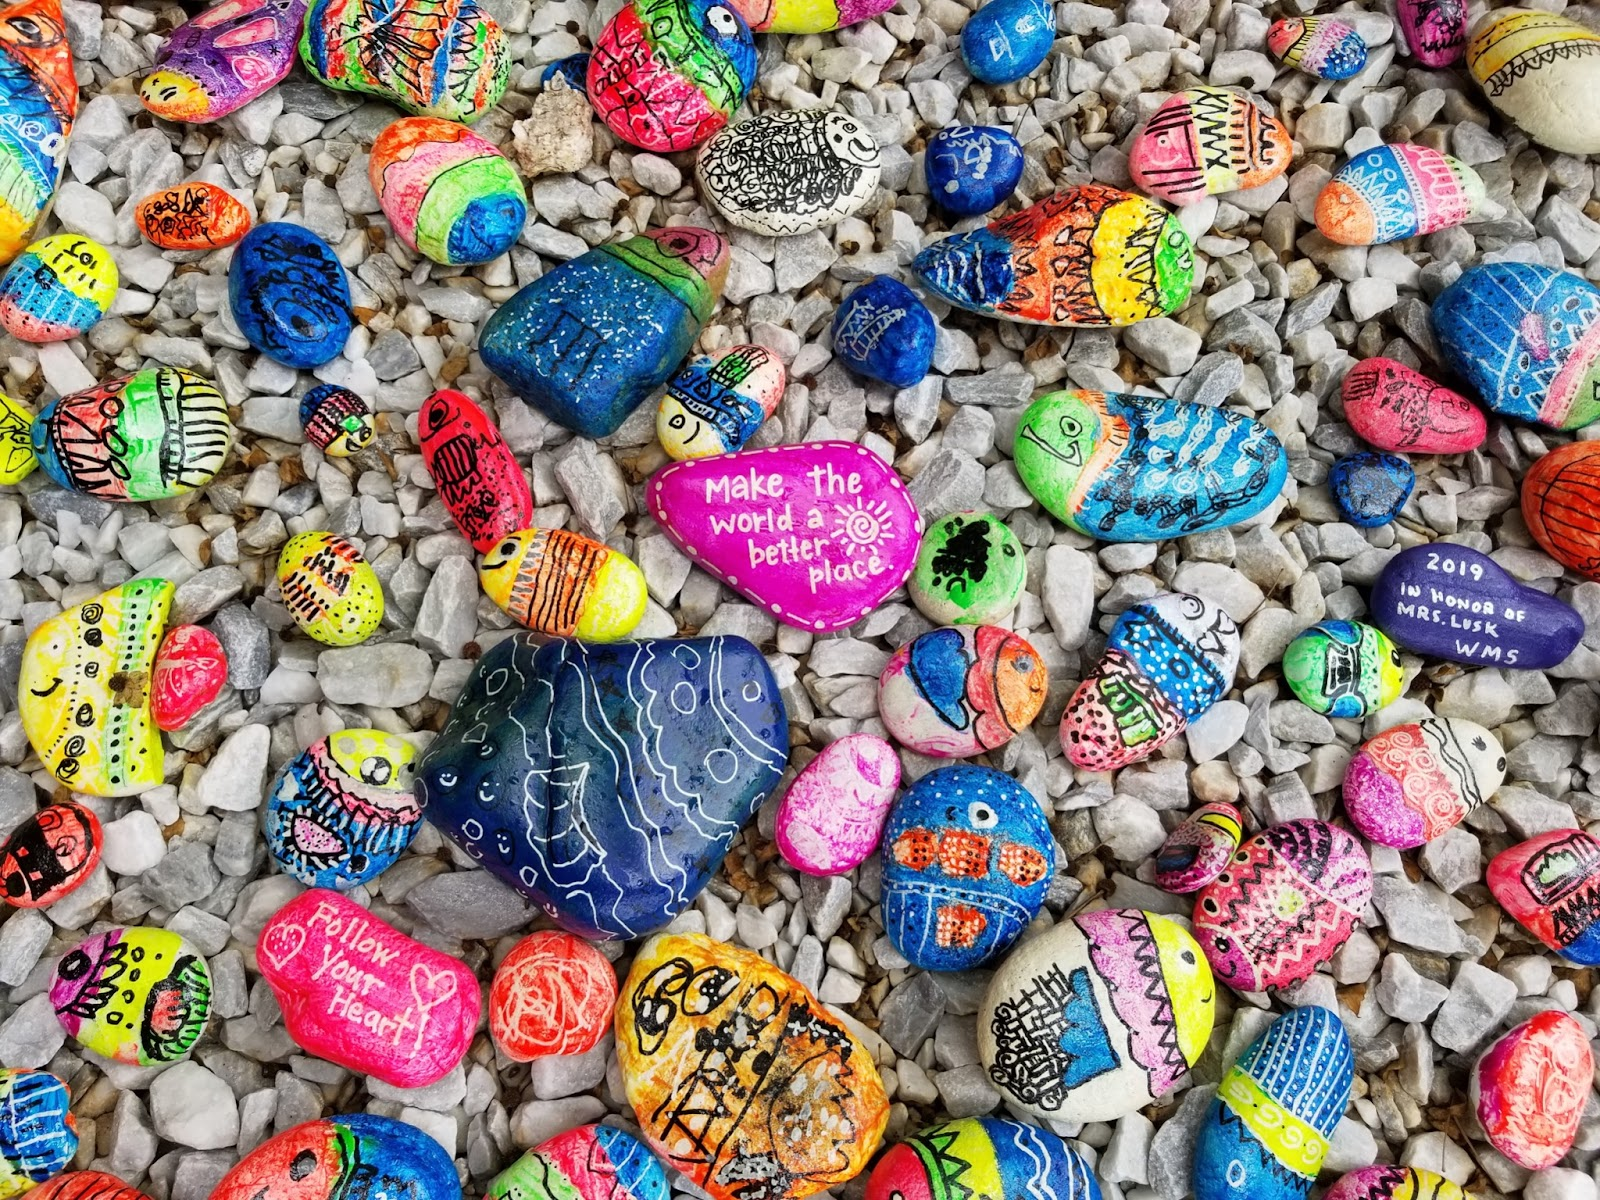 Painted rocks with words of encouragement